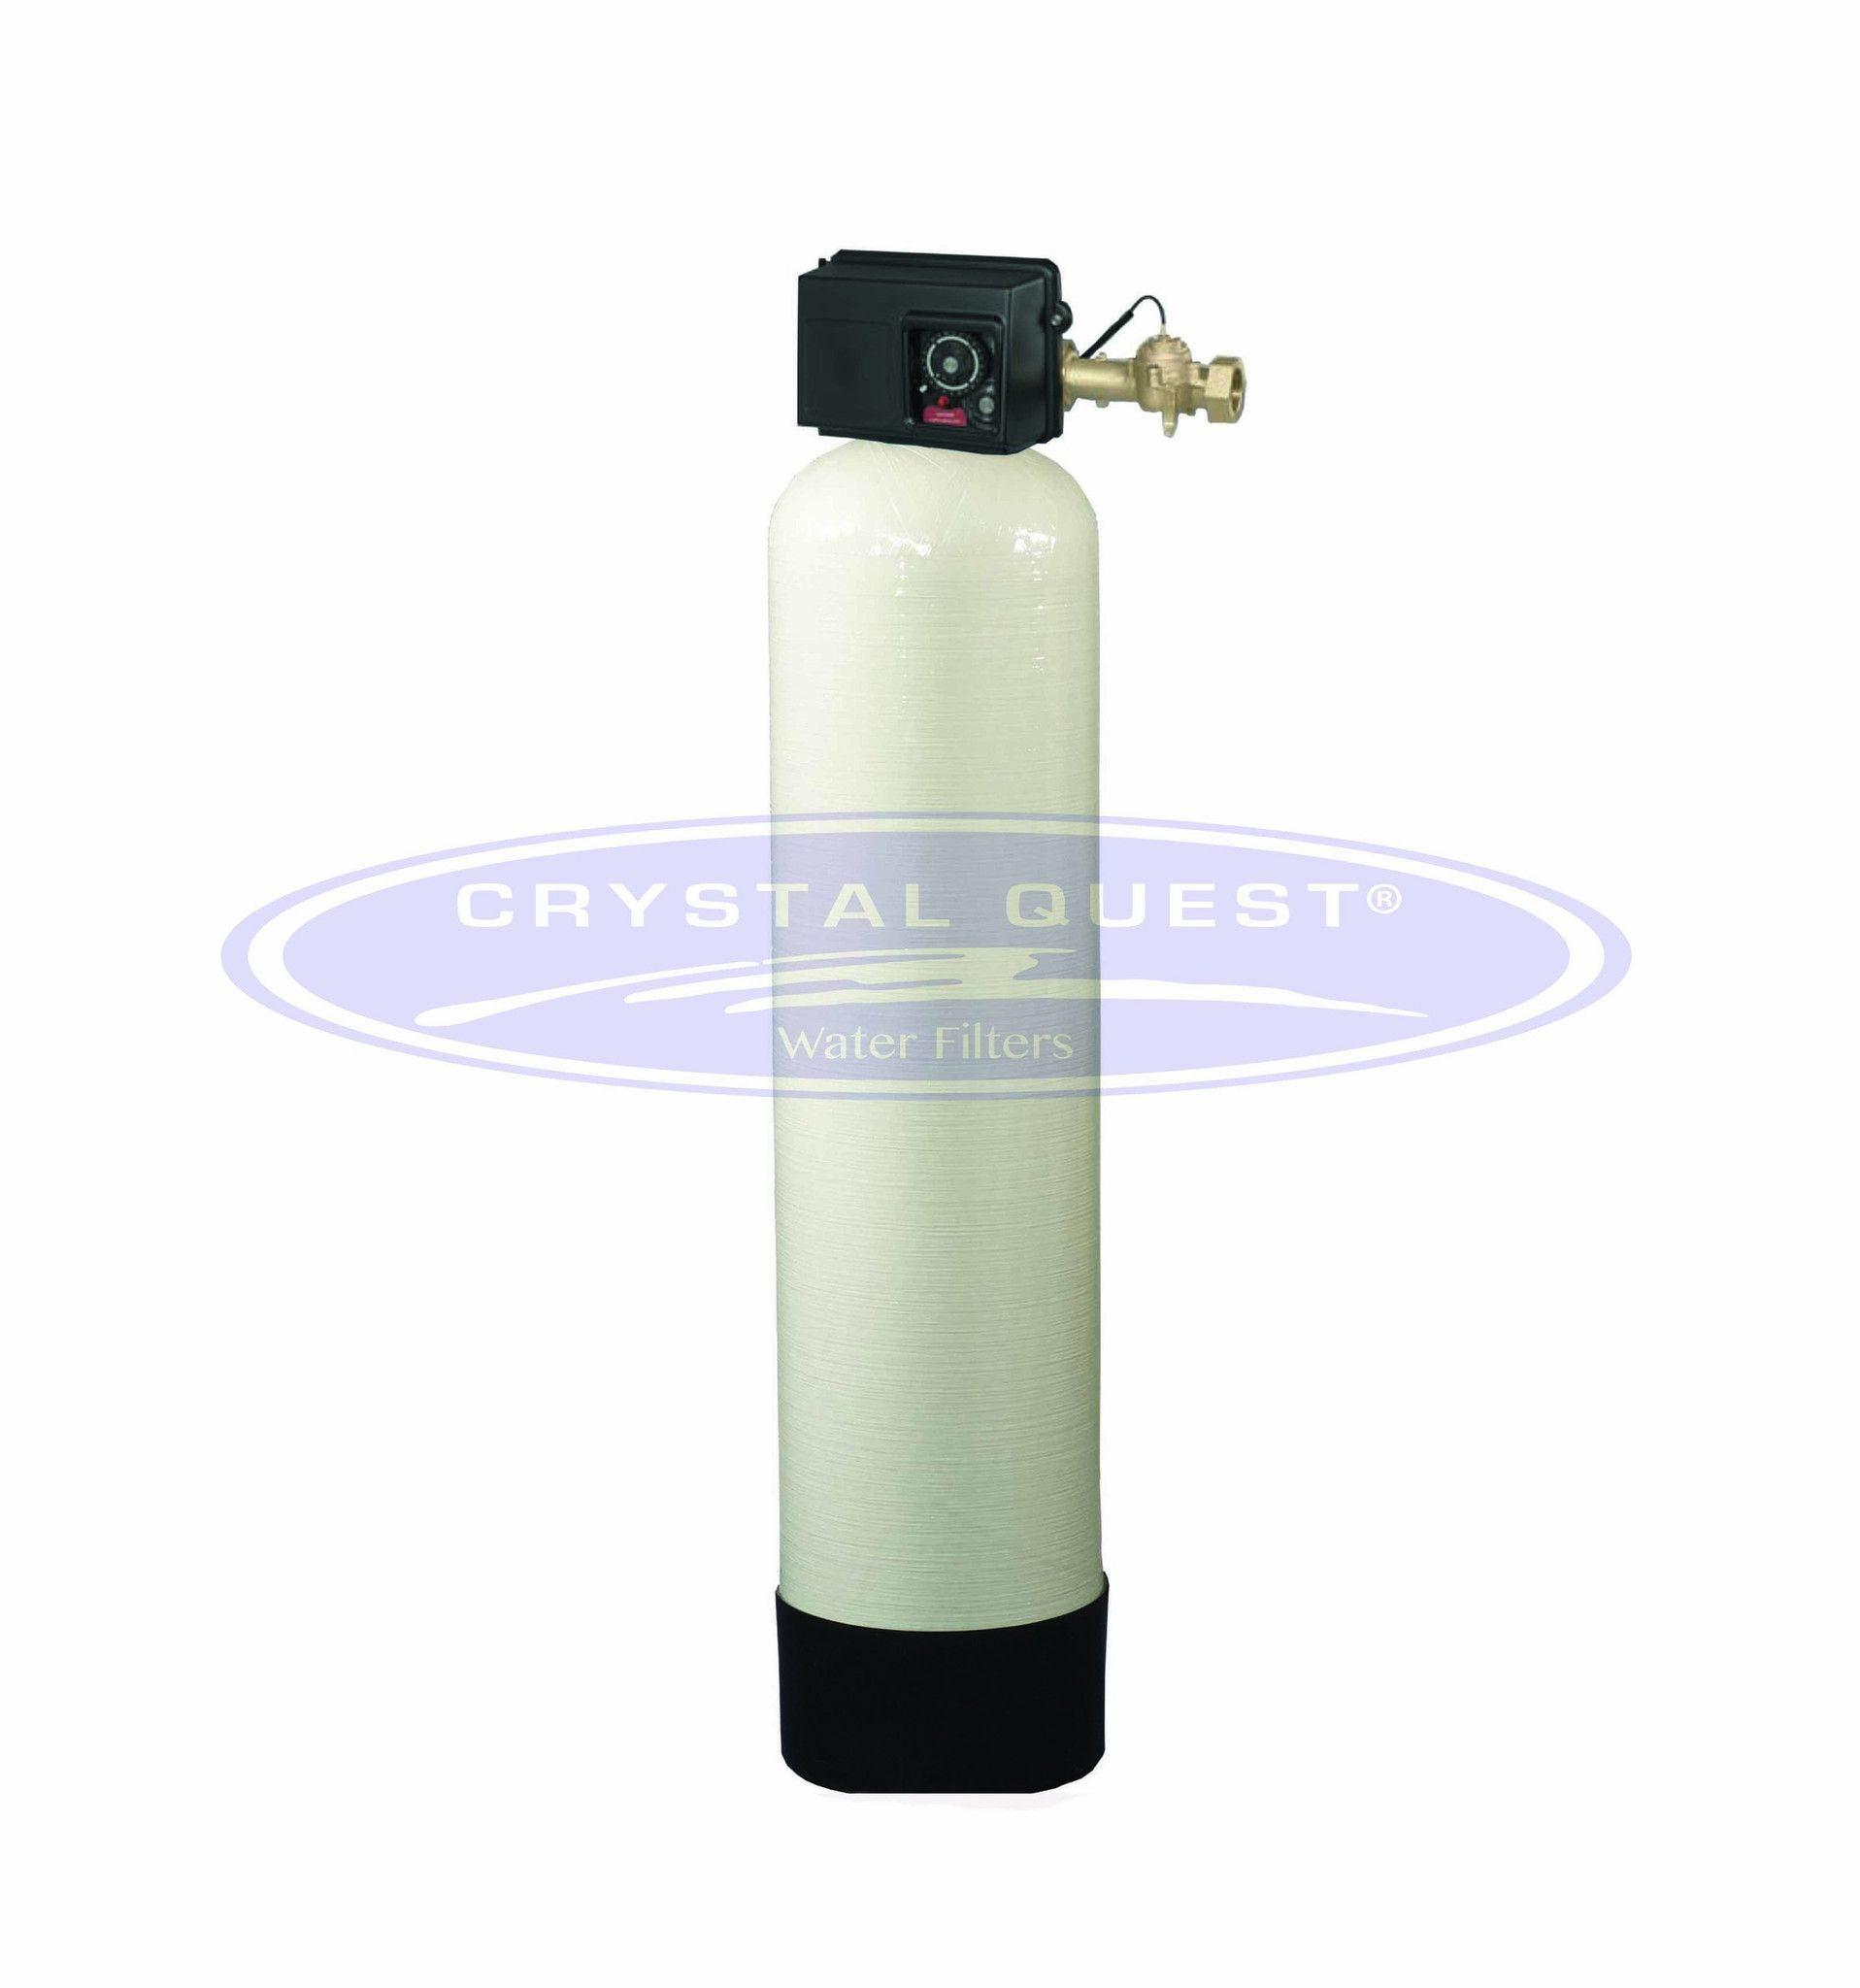 tannin removal water filtration system 4 cu ft water filtration